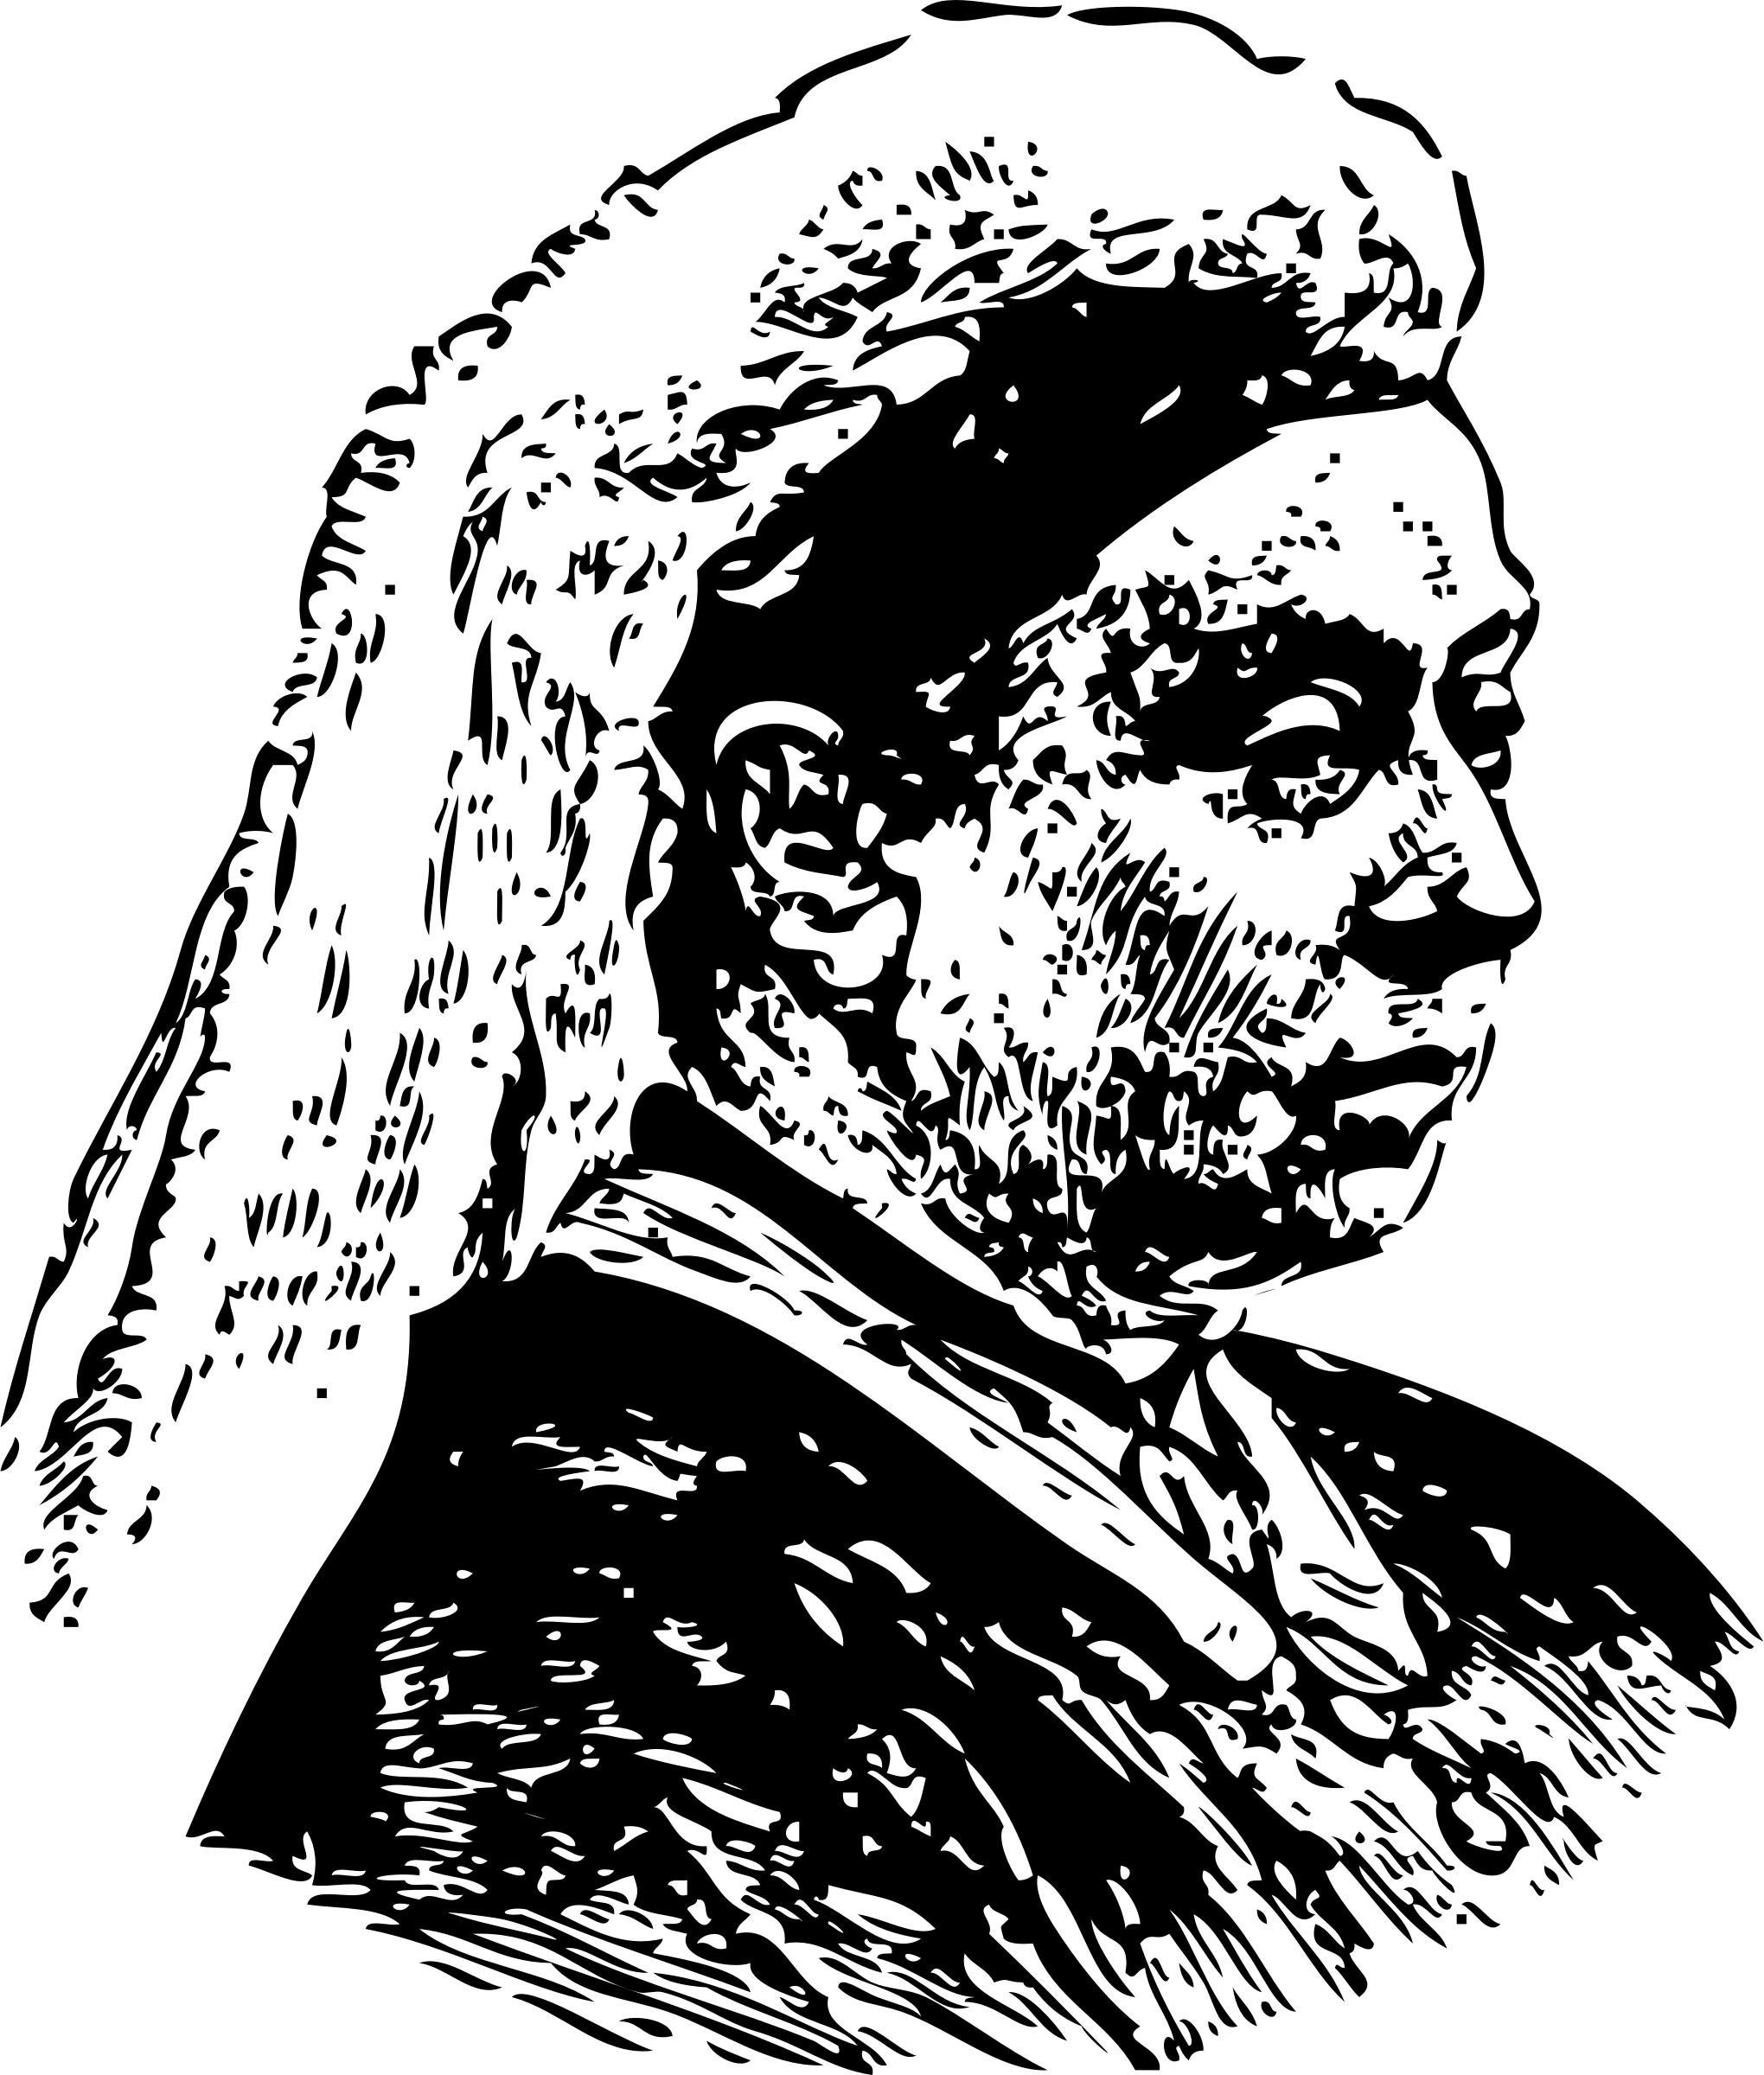 Imperial crown clipart picture stock Imperial State Crown Queen Victoria transparent PNG - StickPNG picture stock